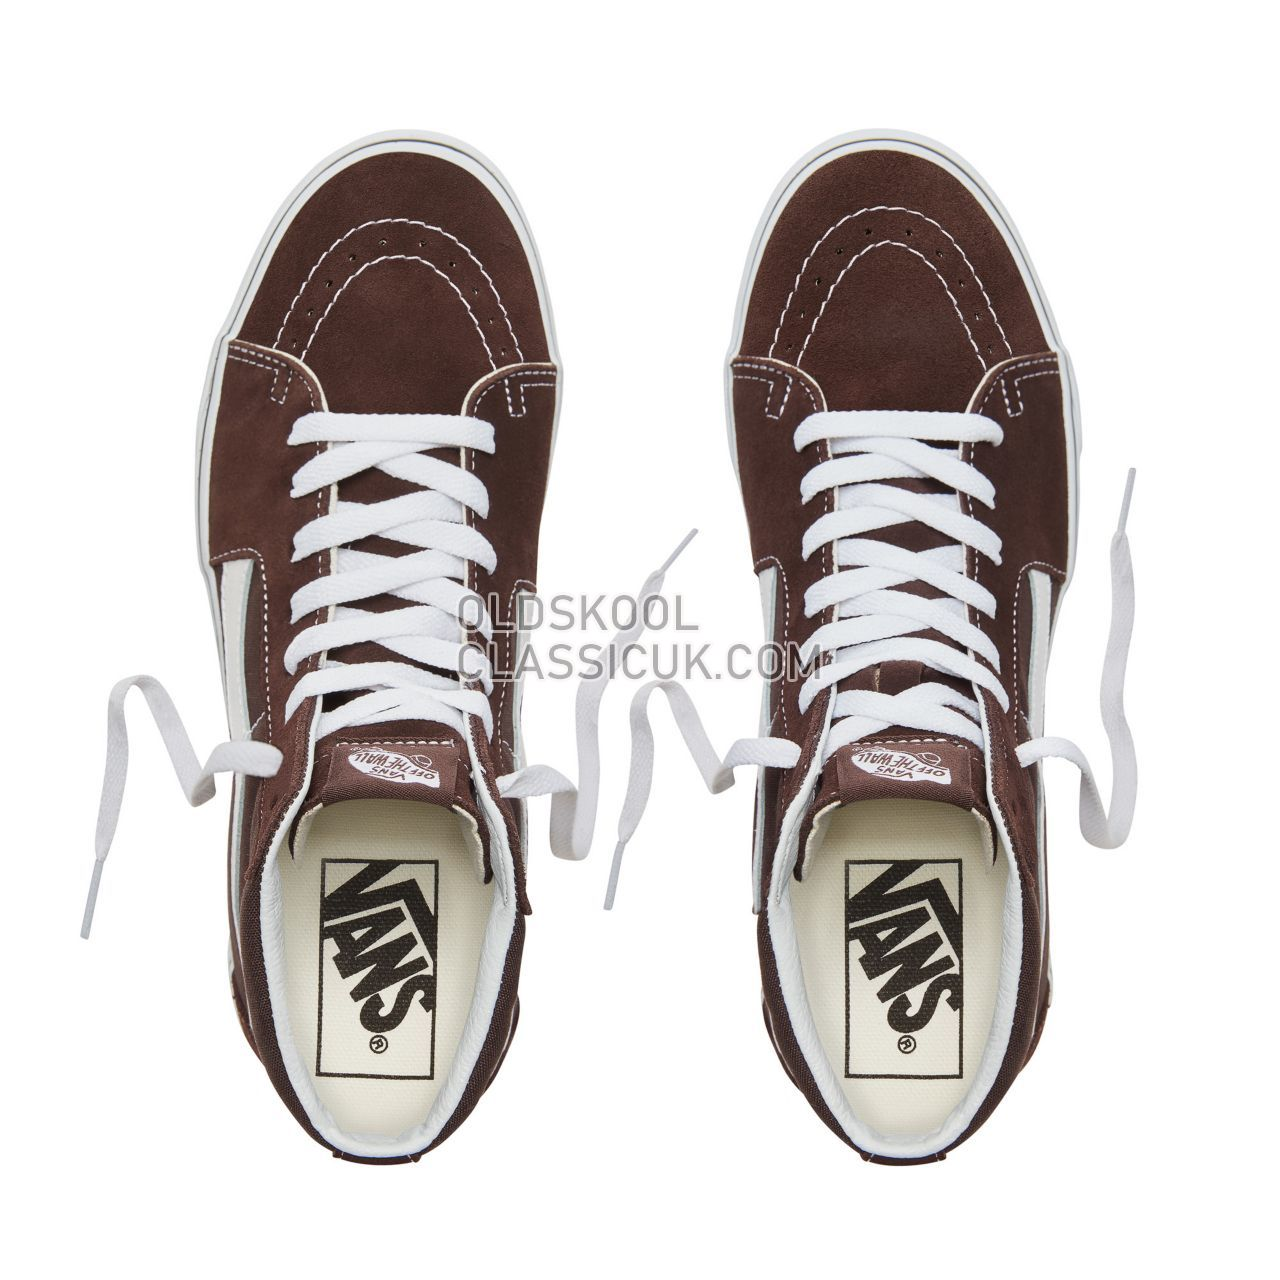 Vans Color Theory Sk8-Hi Sneakers (Unisex) Mens Chocolate Torte/True White VA38GEU5Z Shoes